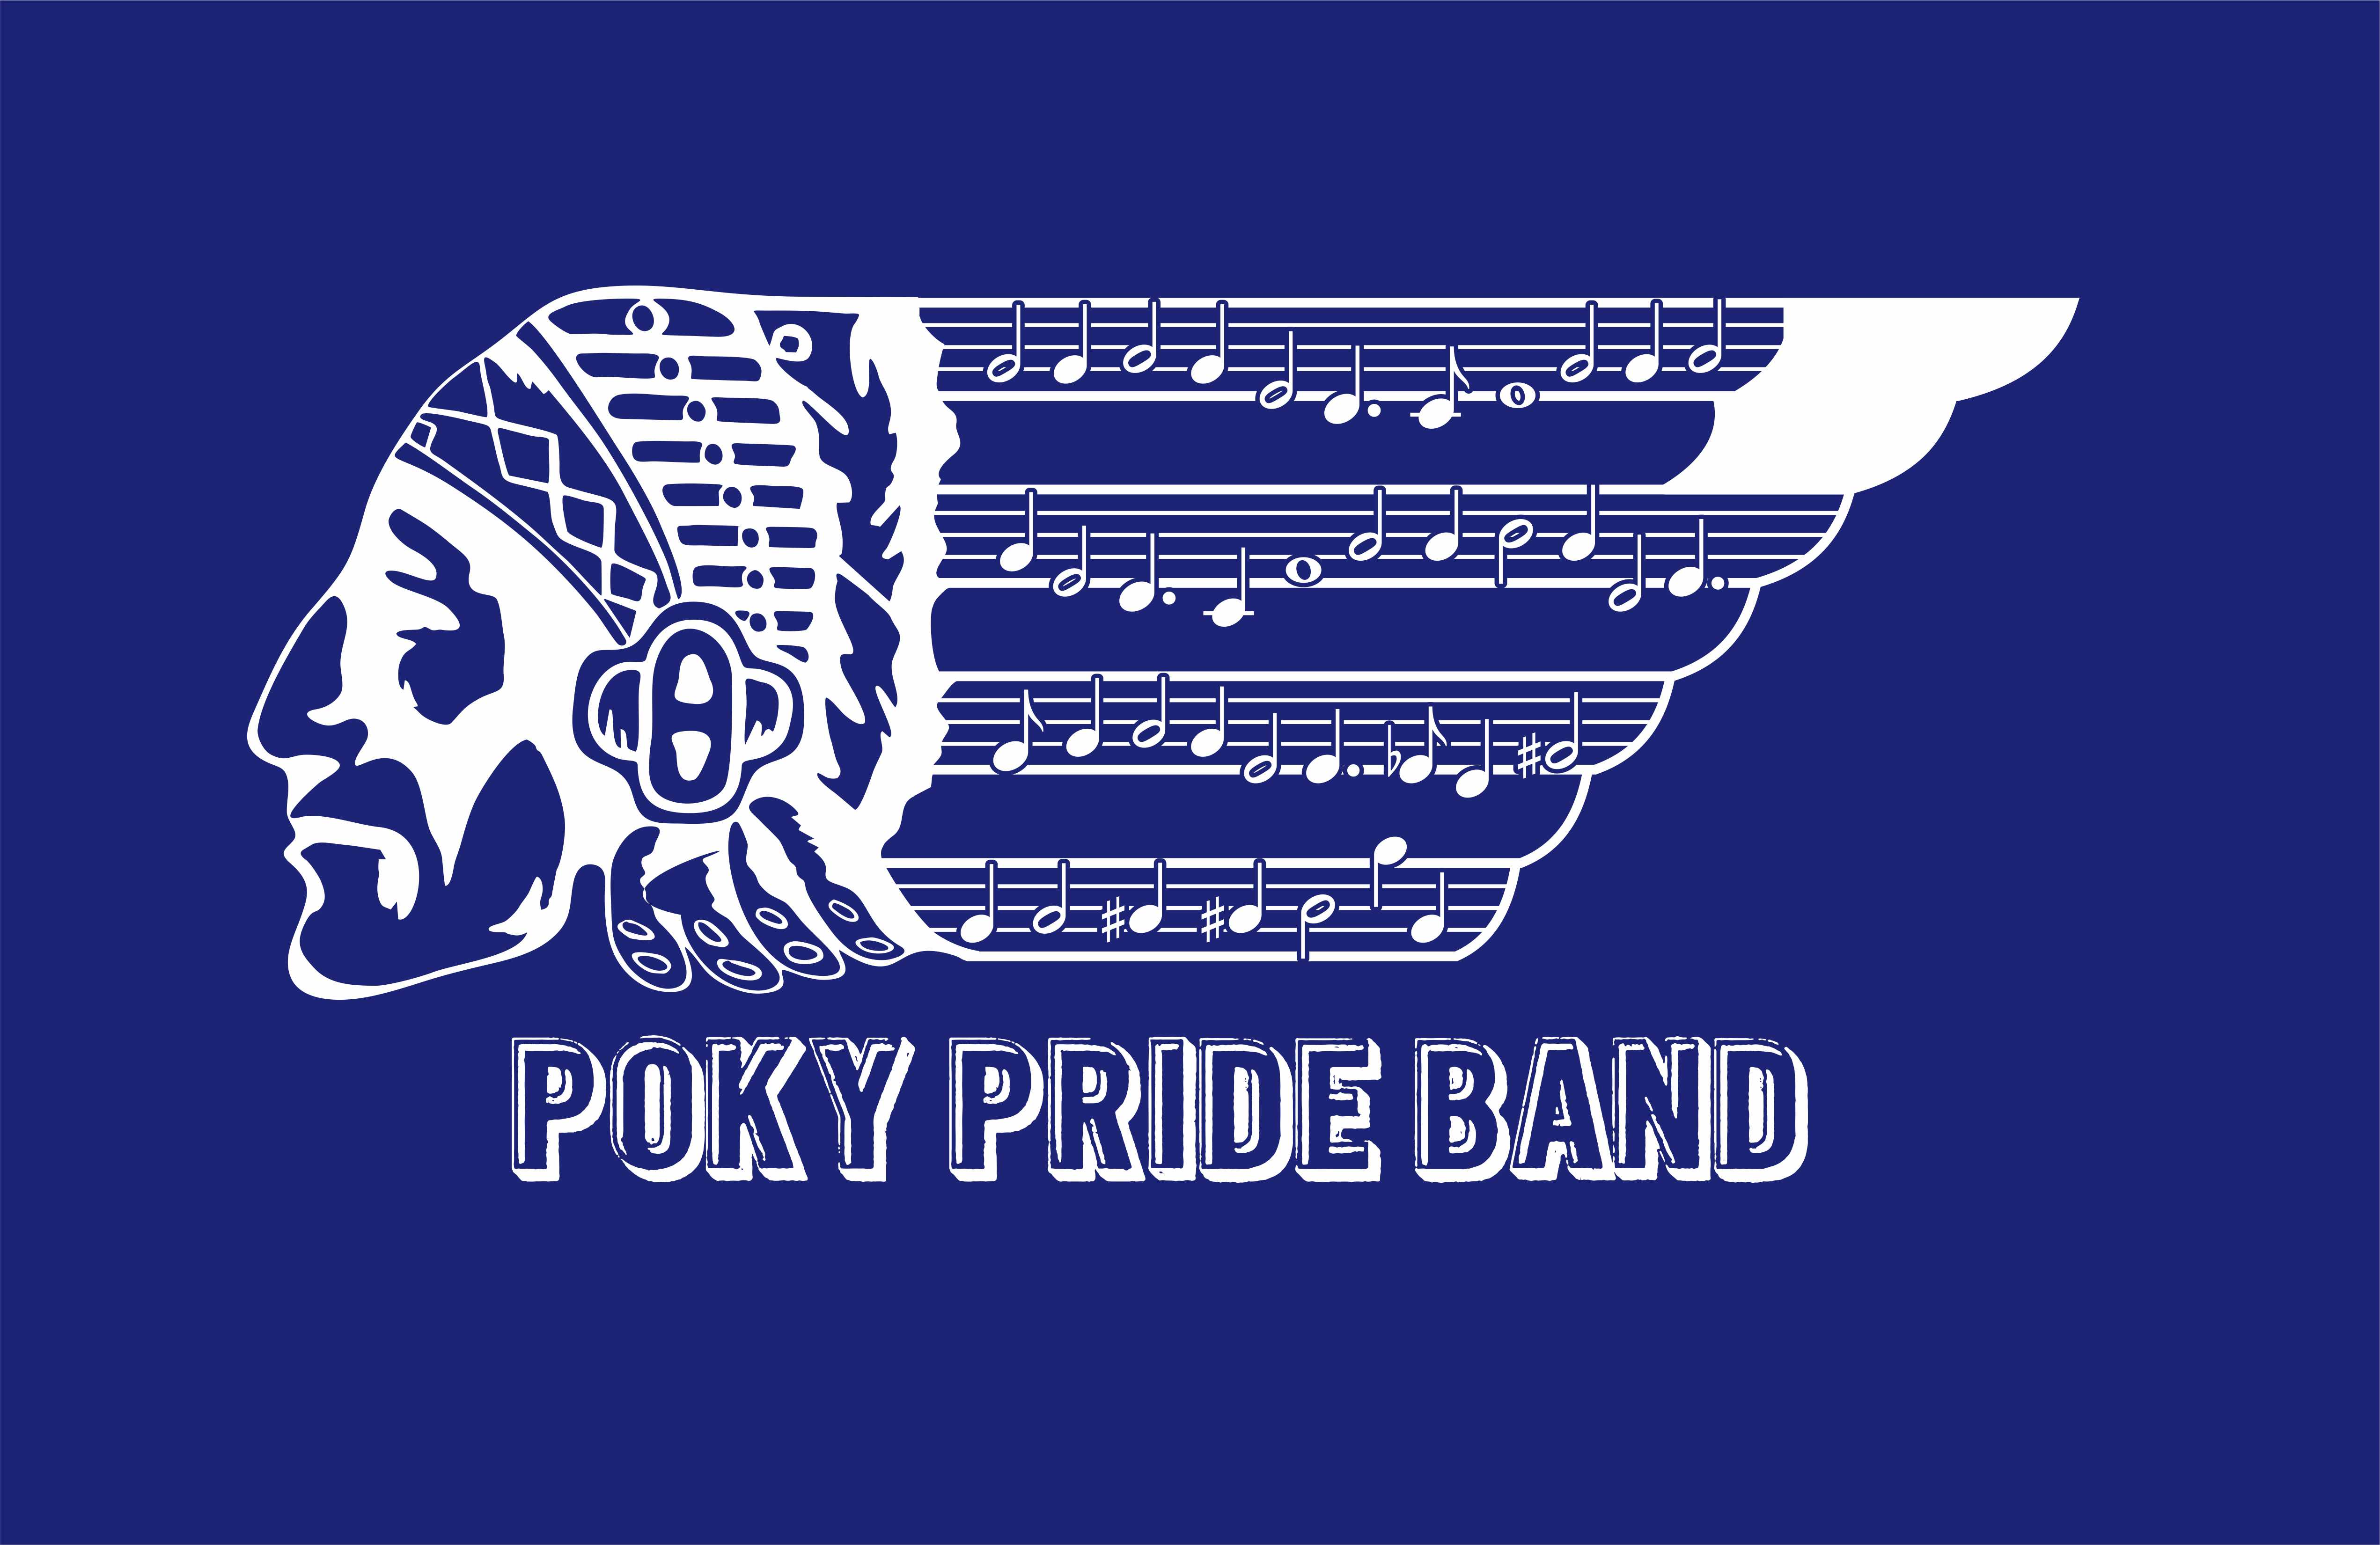 Poky High Band Annual Fundaraiser